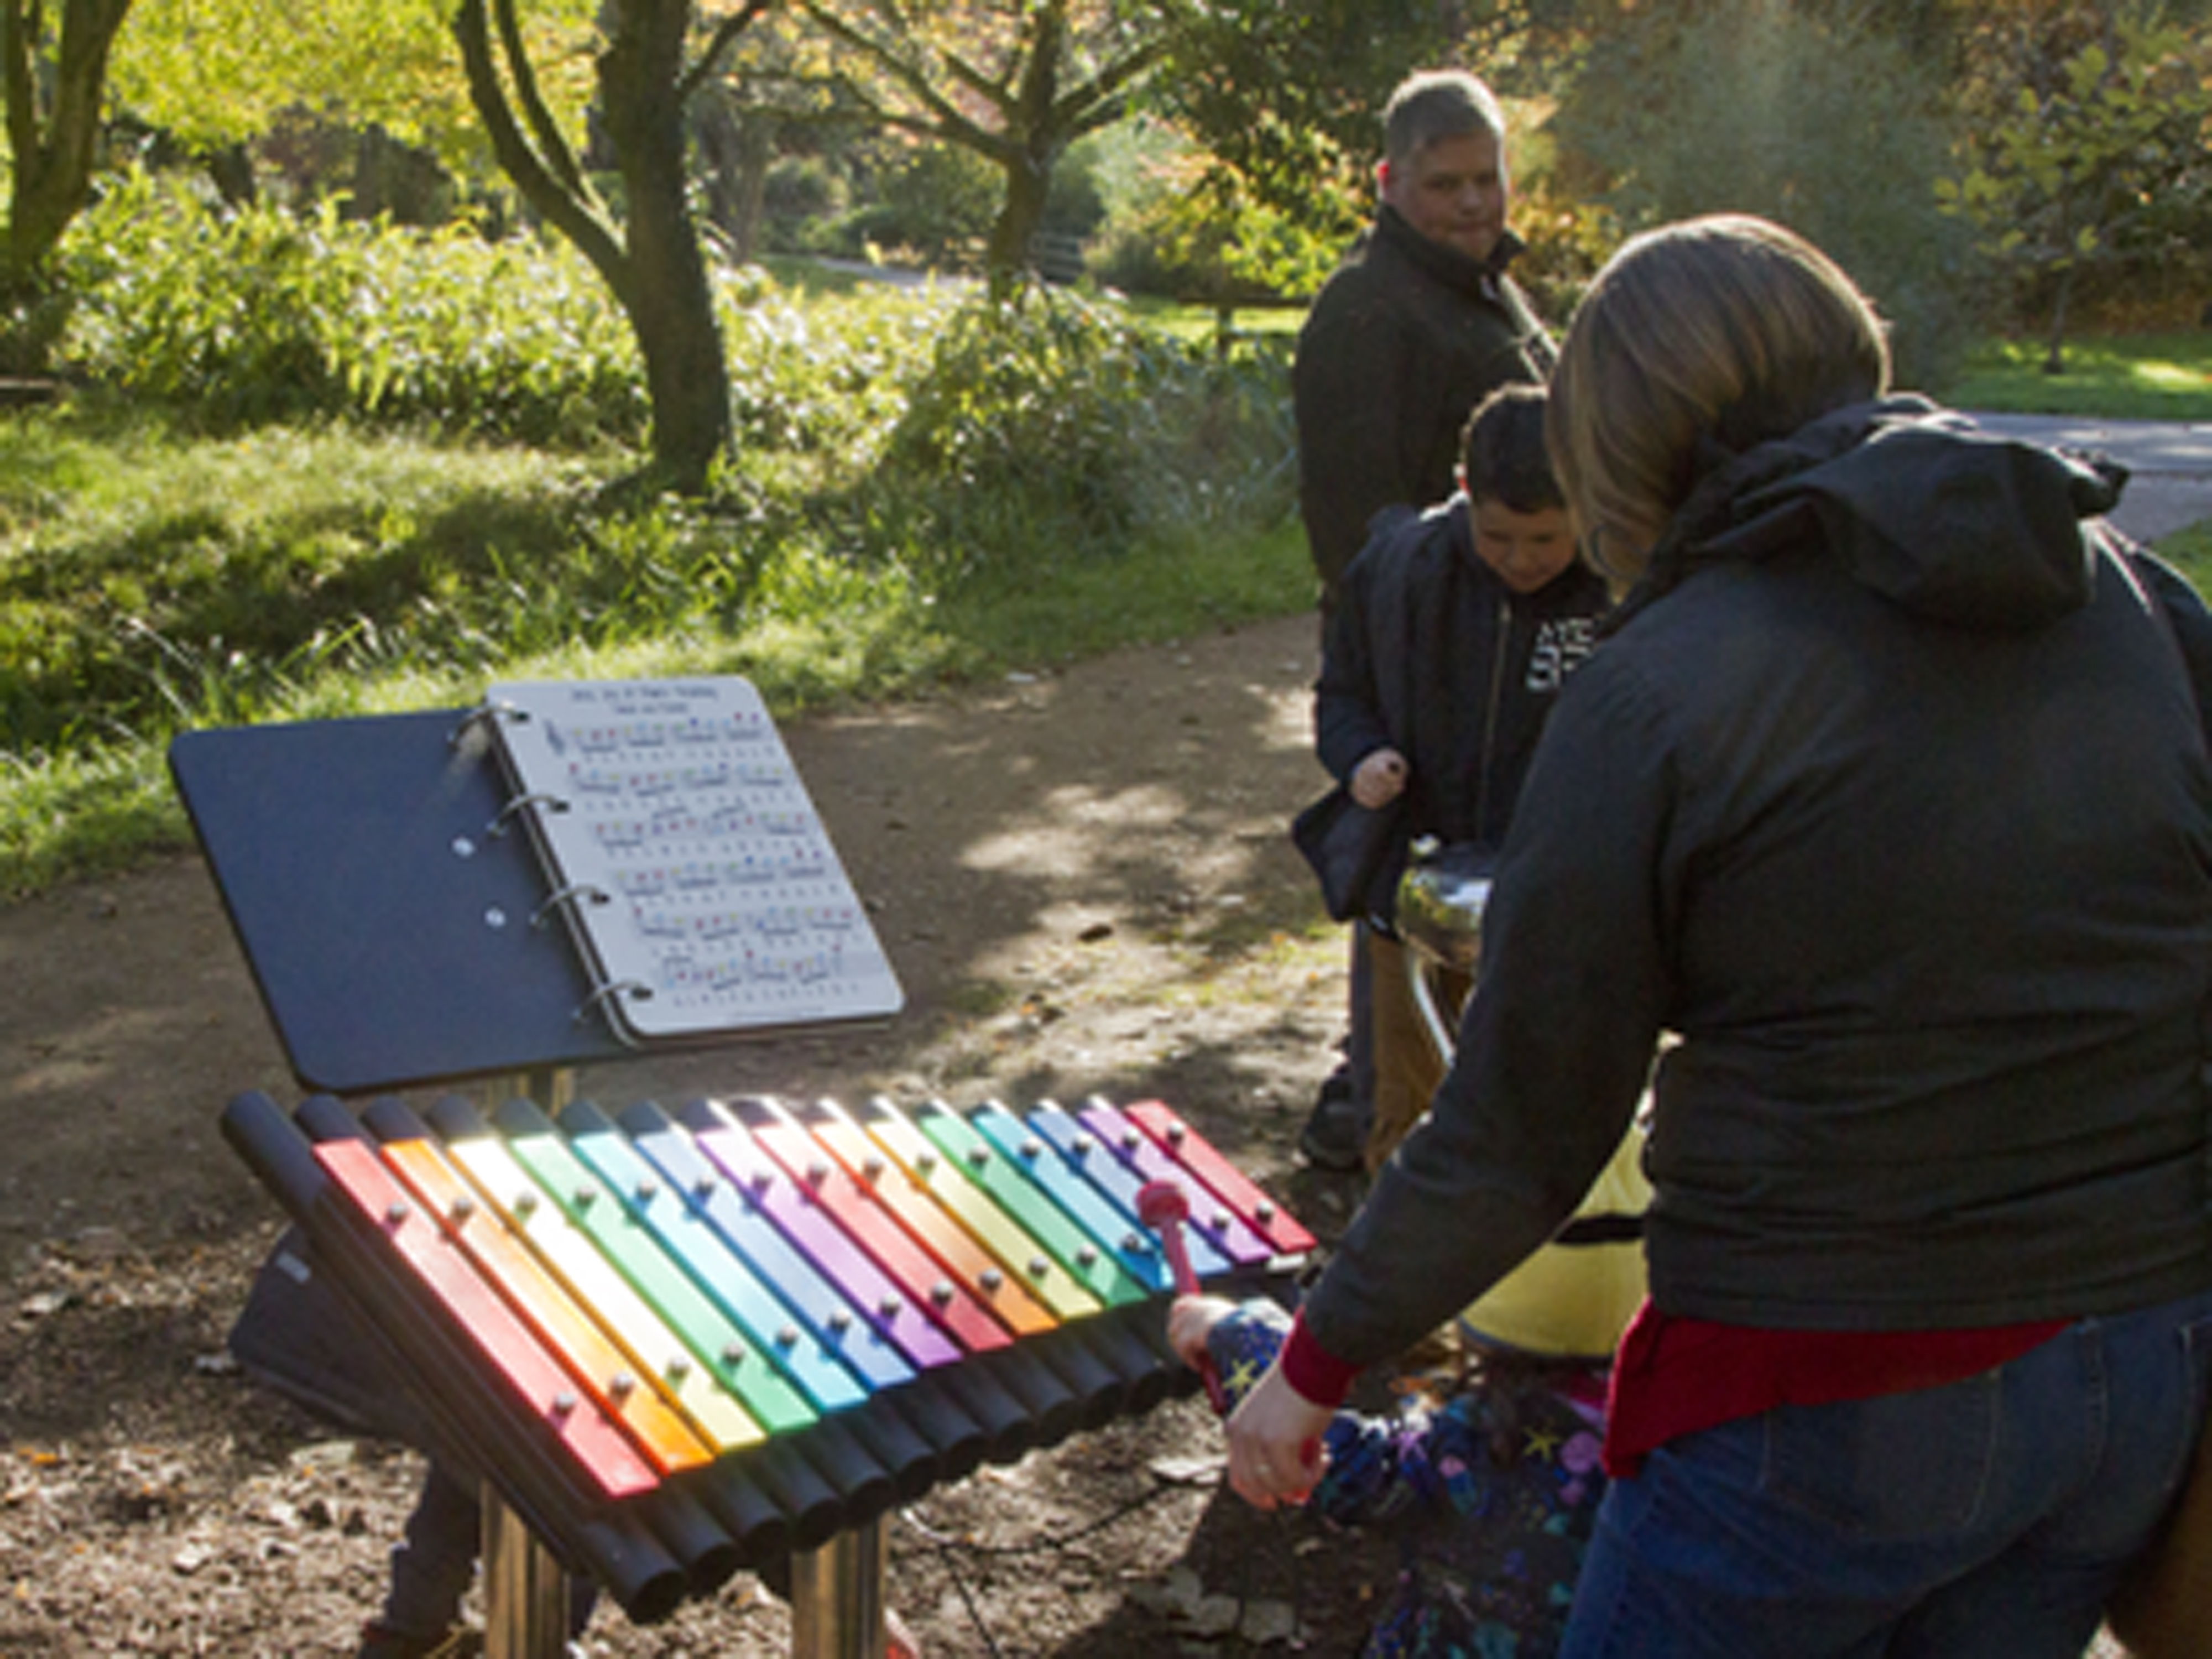 With sun low in the sky in late October 2018, music wafted through the trees. In the pre-Halloween trail for children and adults, with an open invitation to make the music themselves.